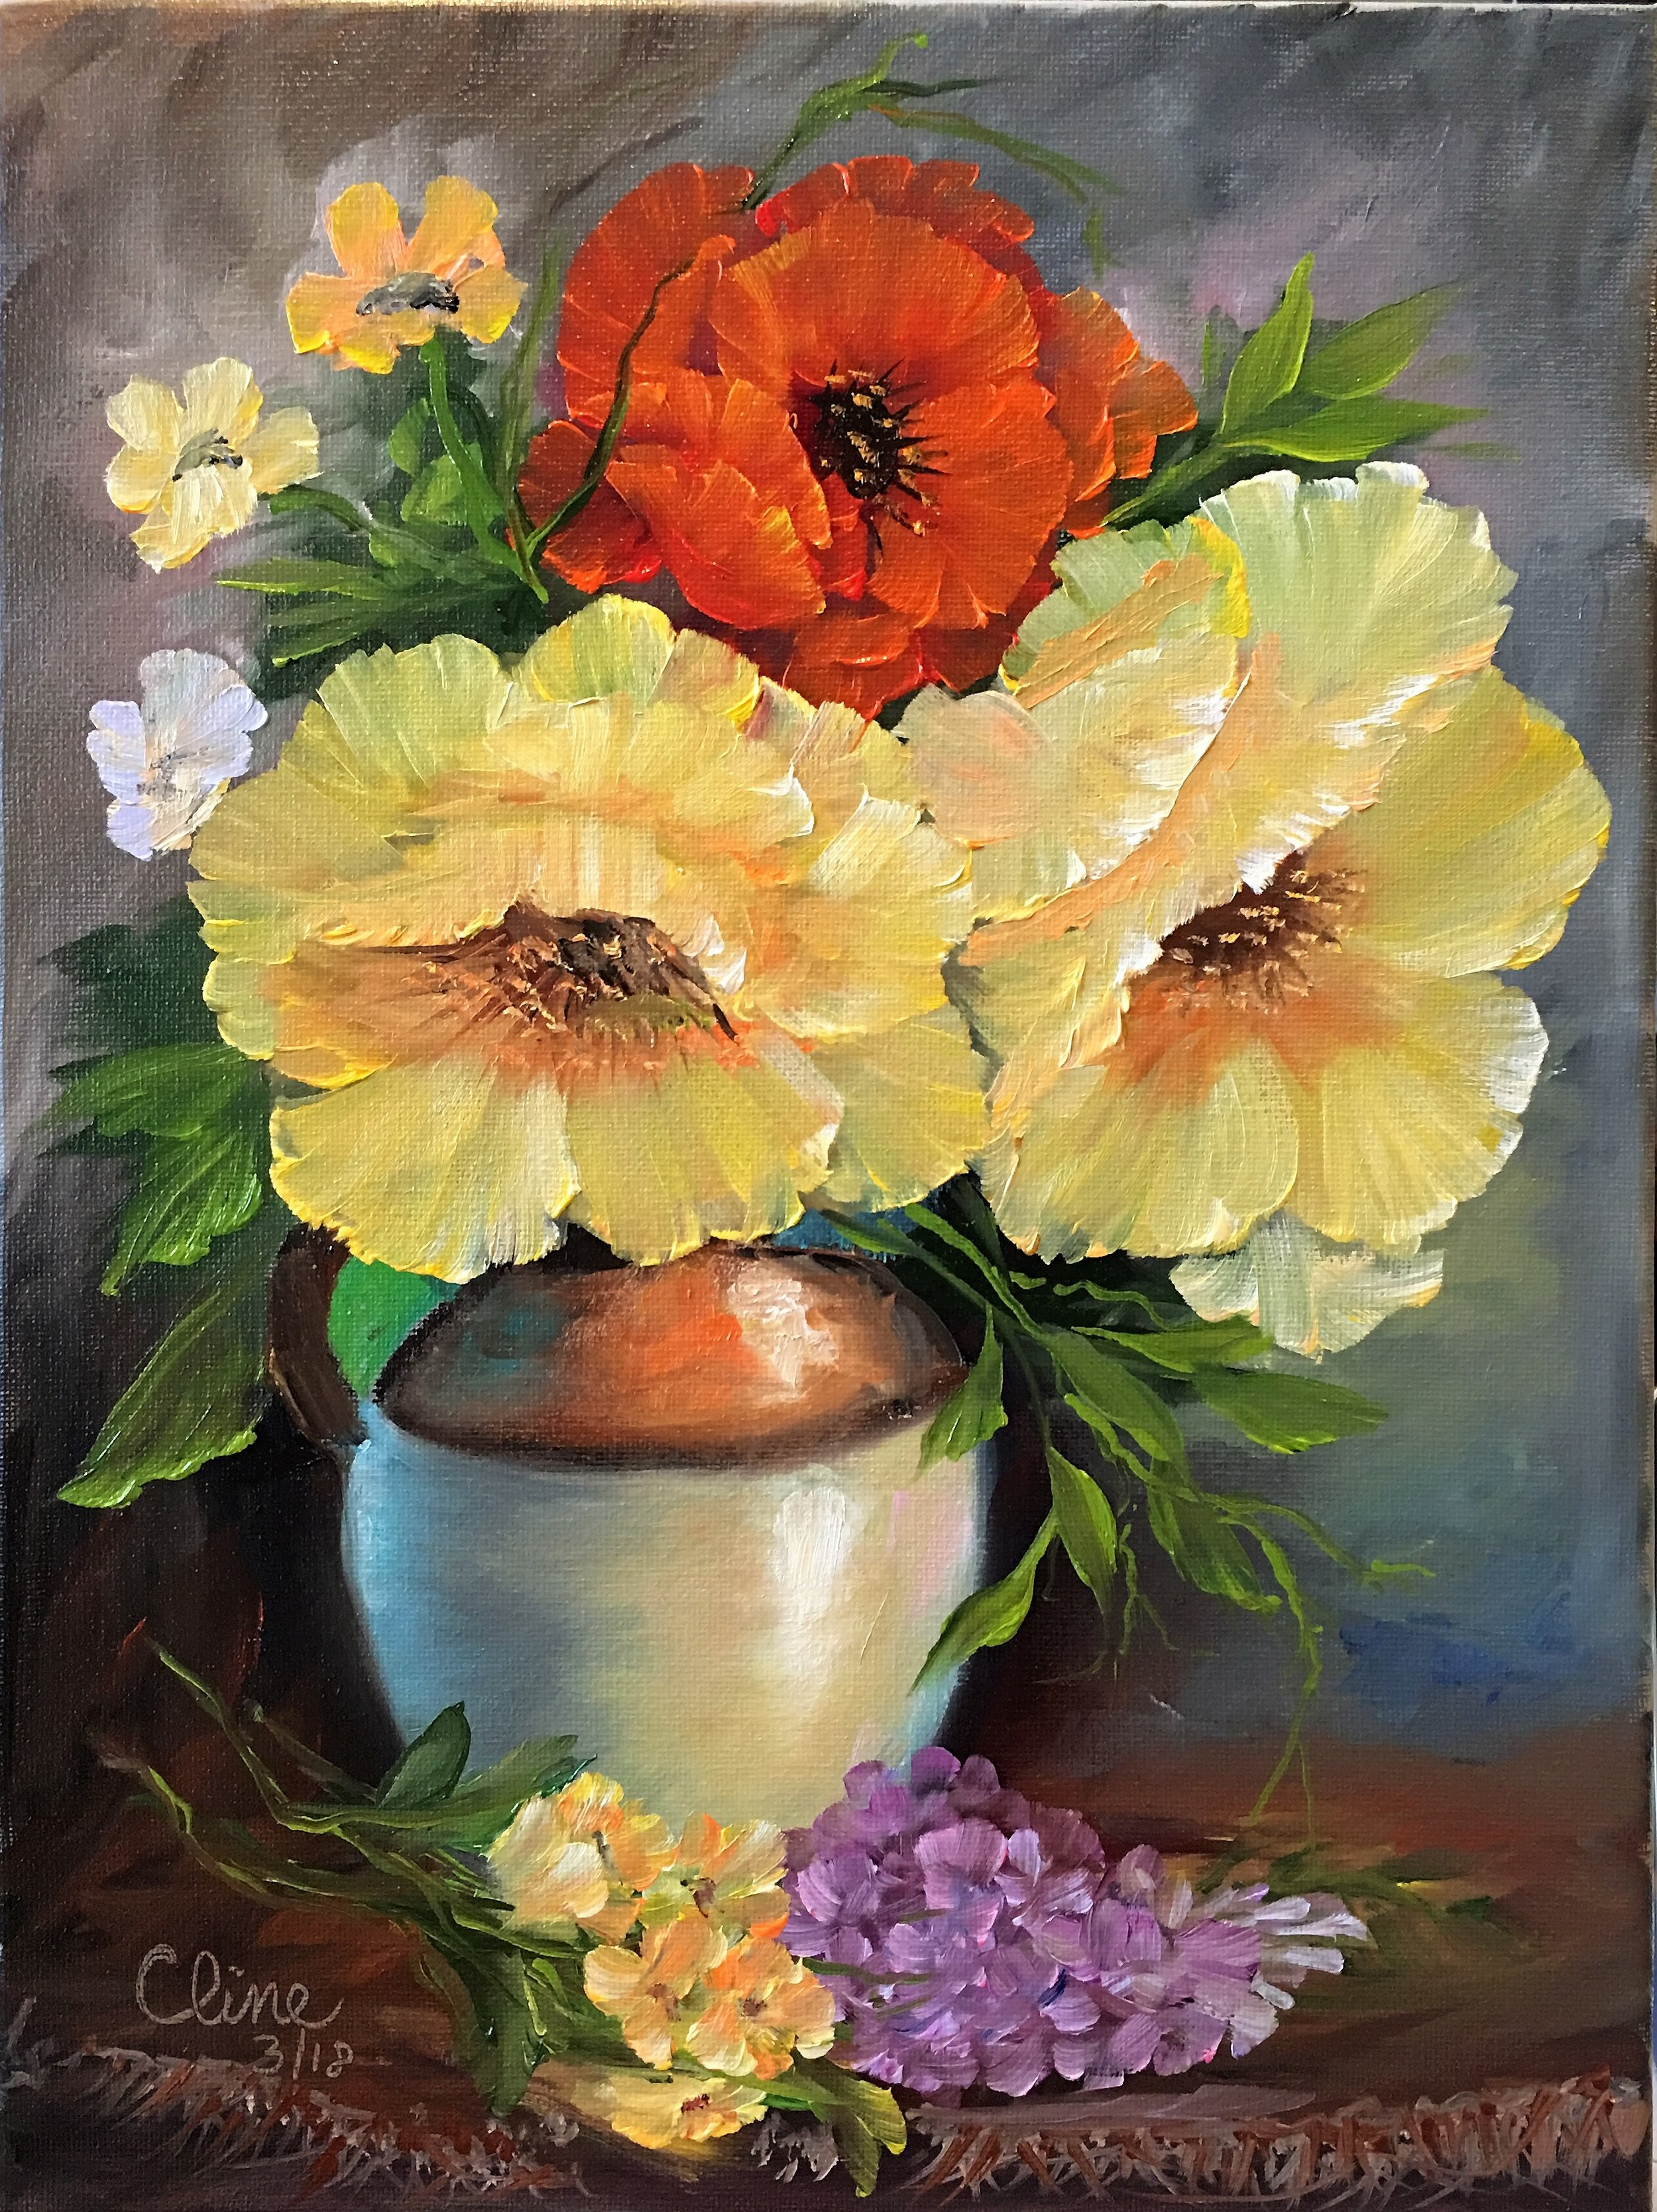 Poppies in an Old Ceramic Jug